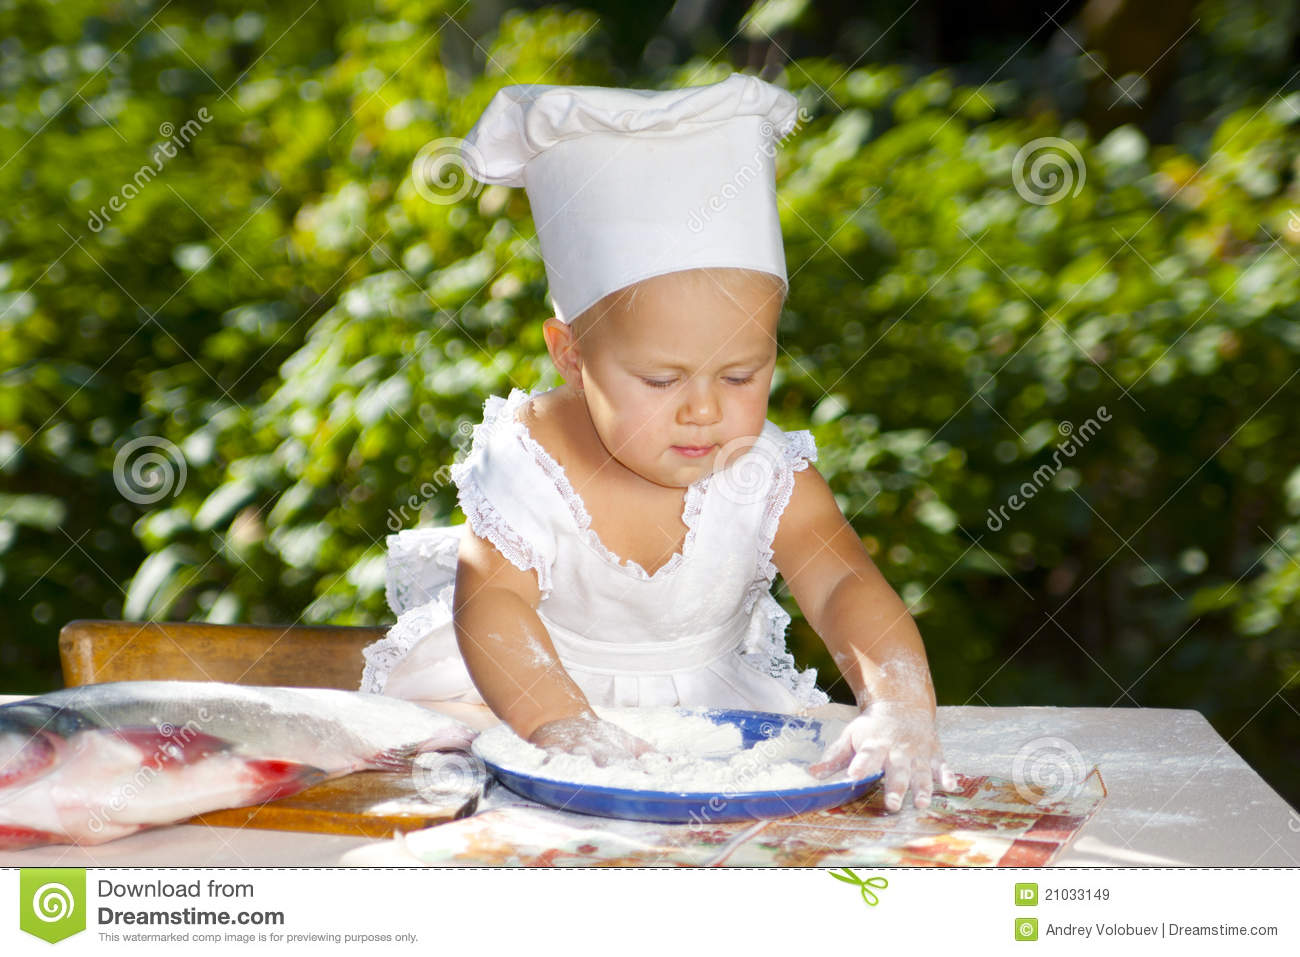 how to cook hoki fish for baby